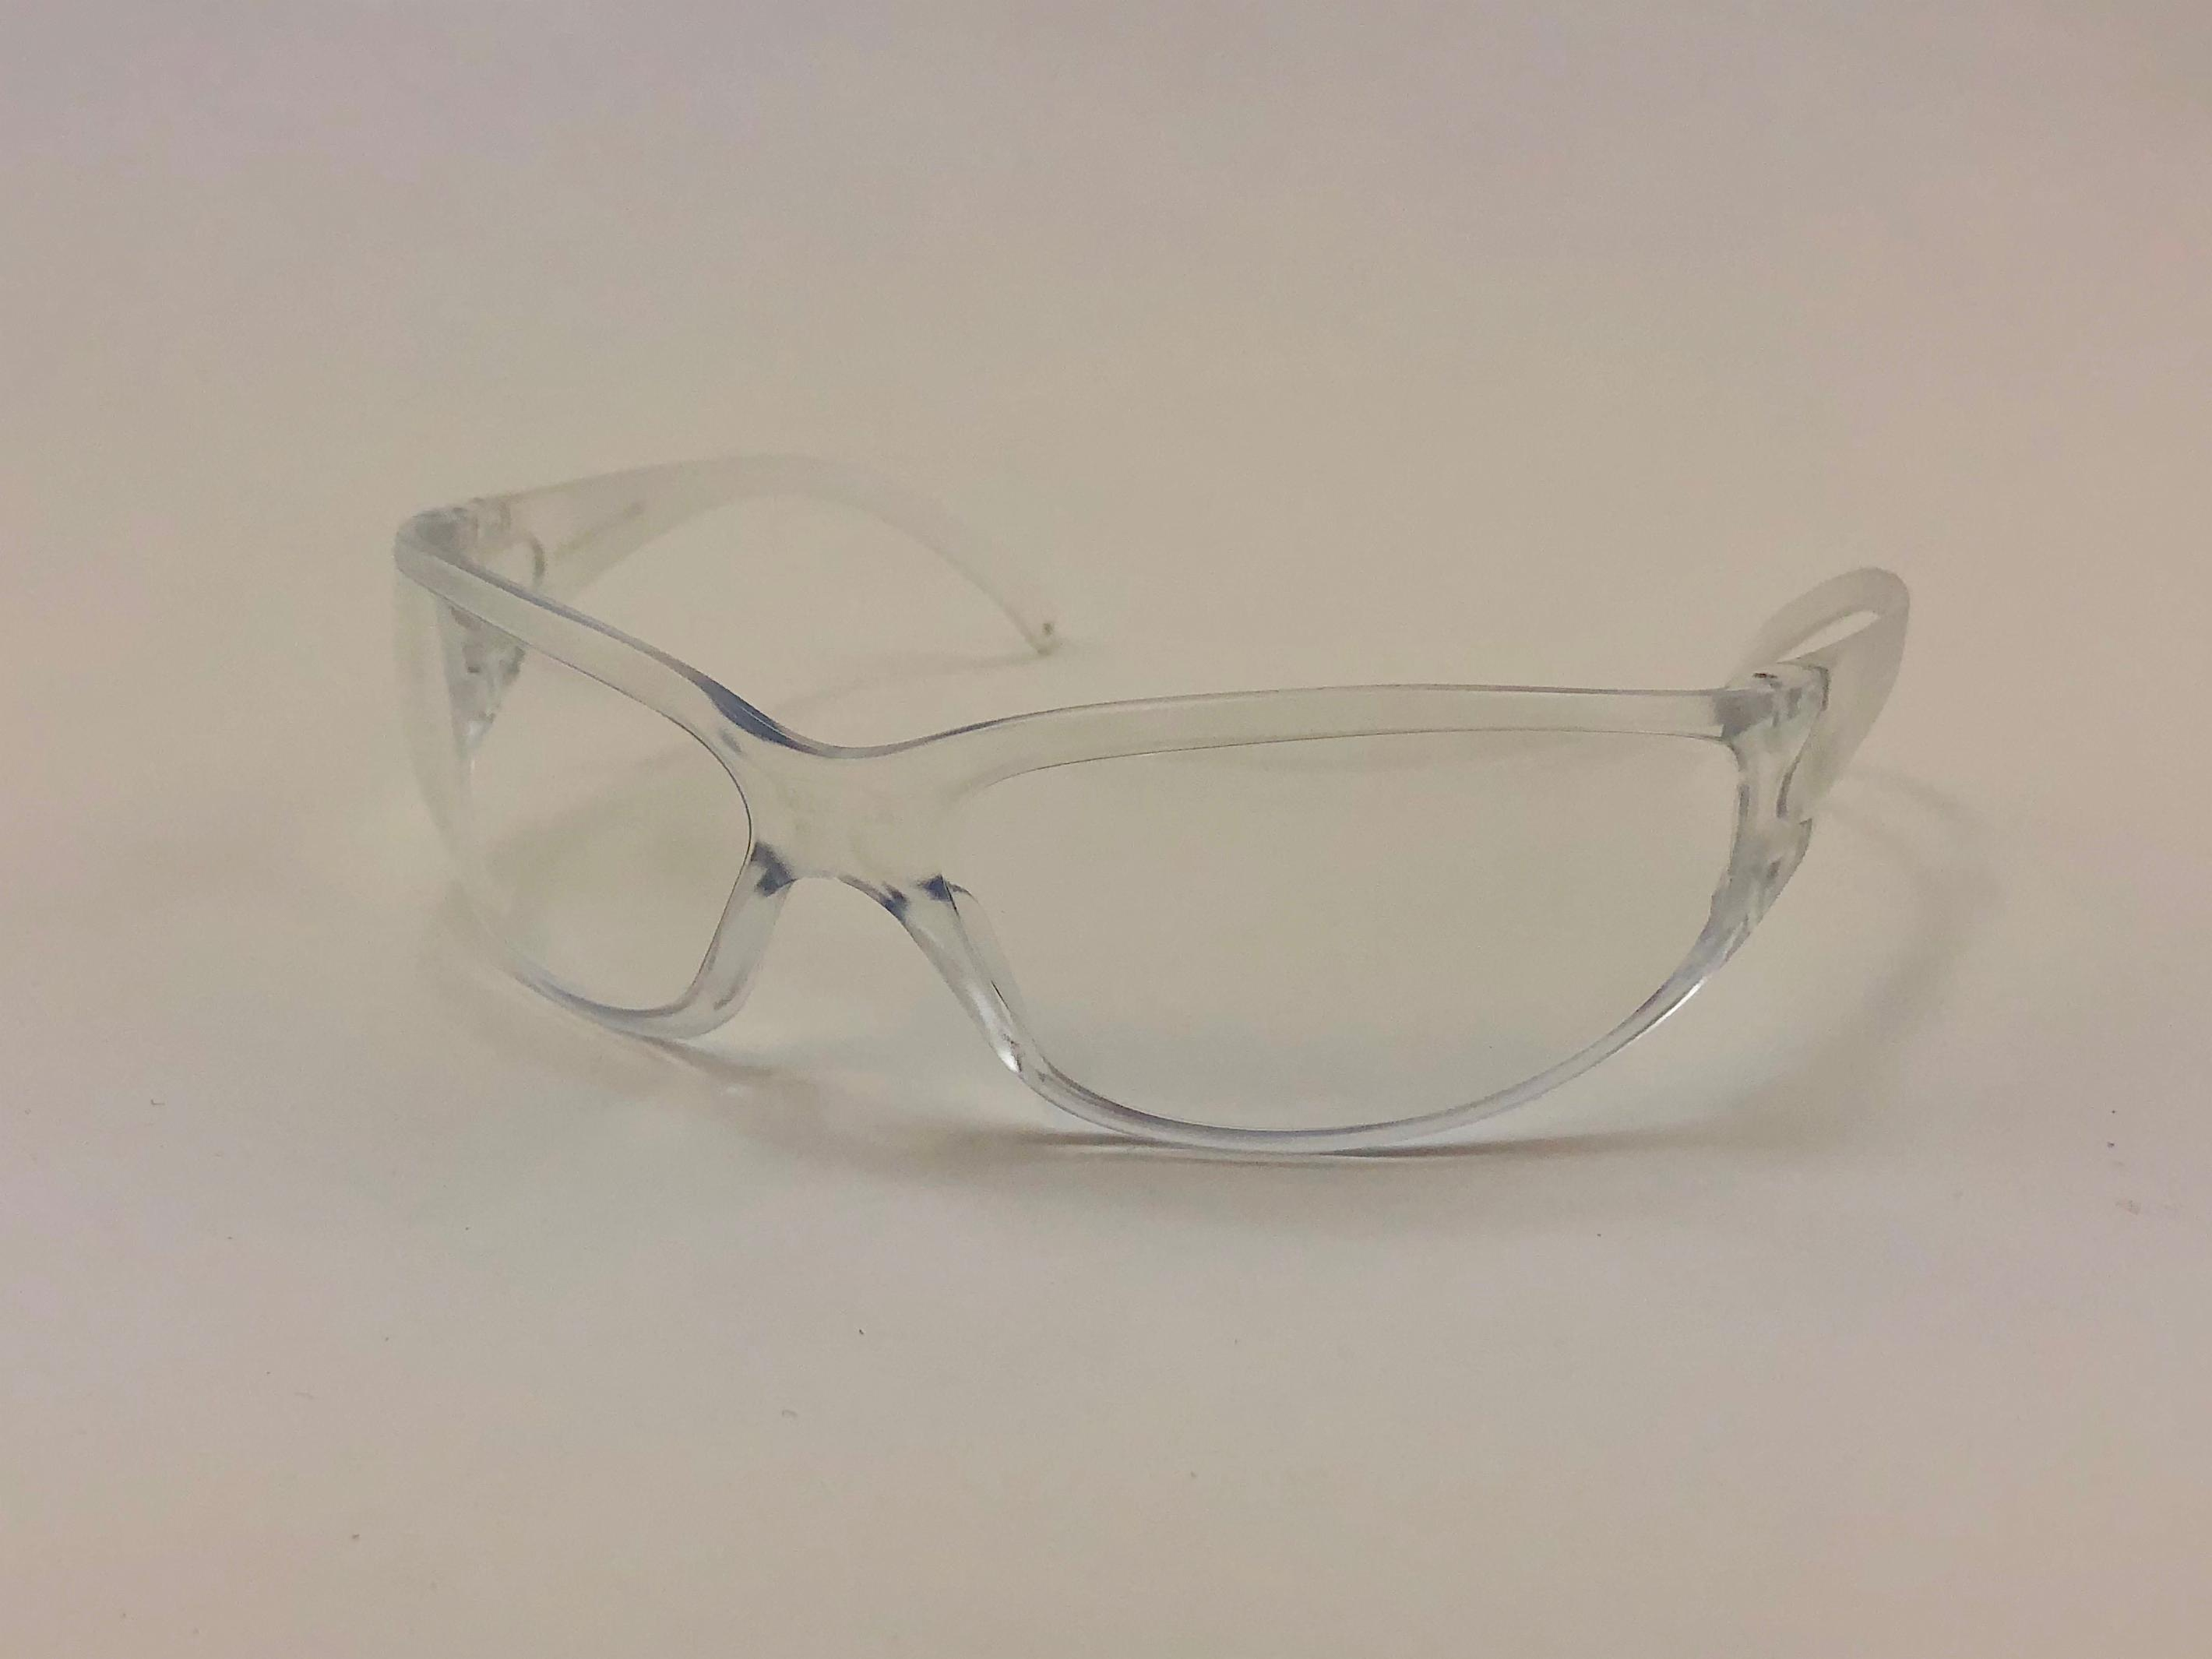 Diamond M SG4600C 4600 Series Over the Glass Style Safety Glasses, Clear